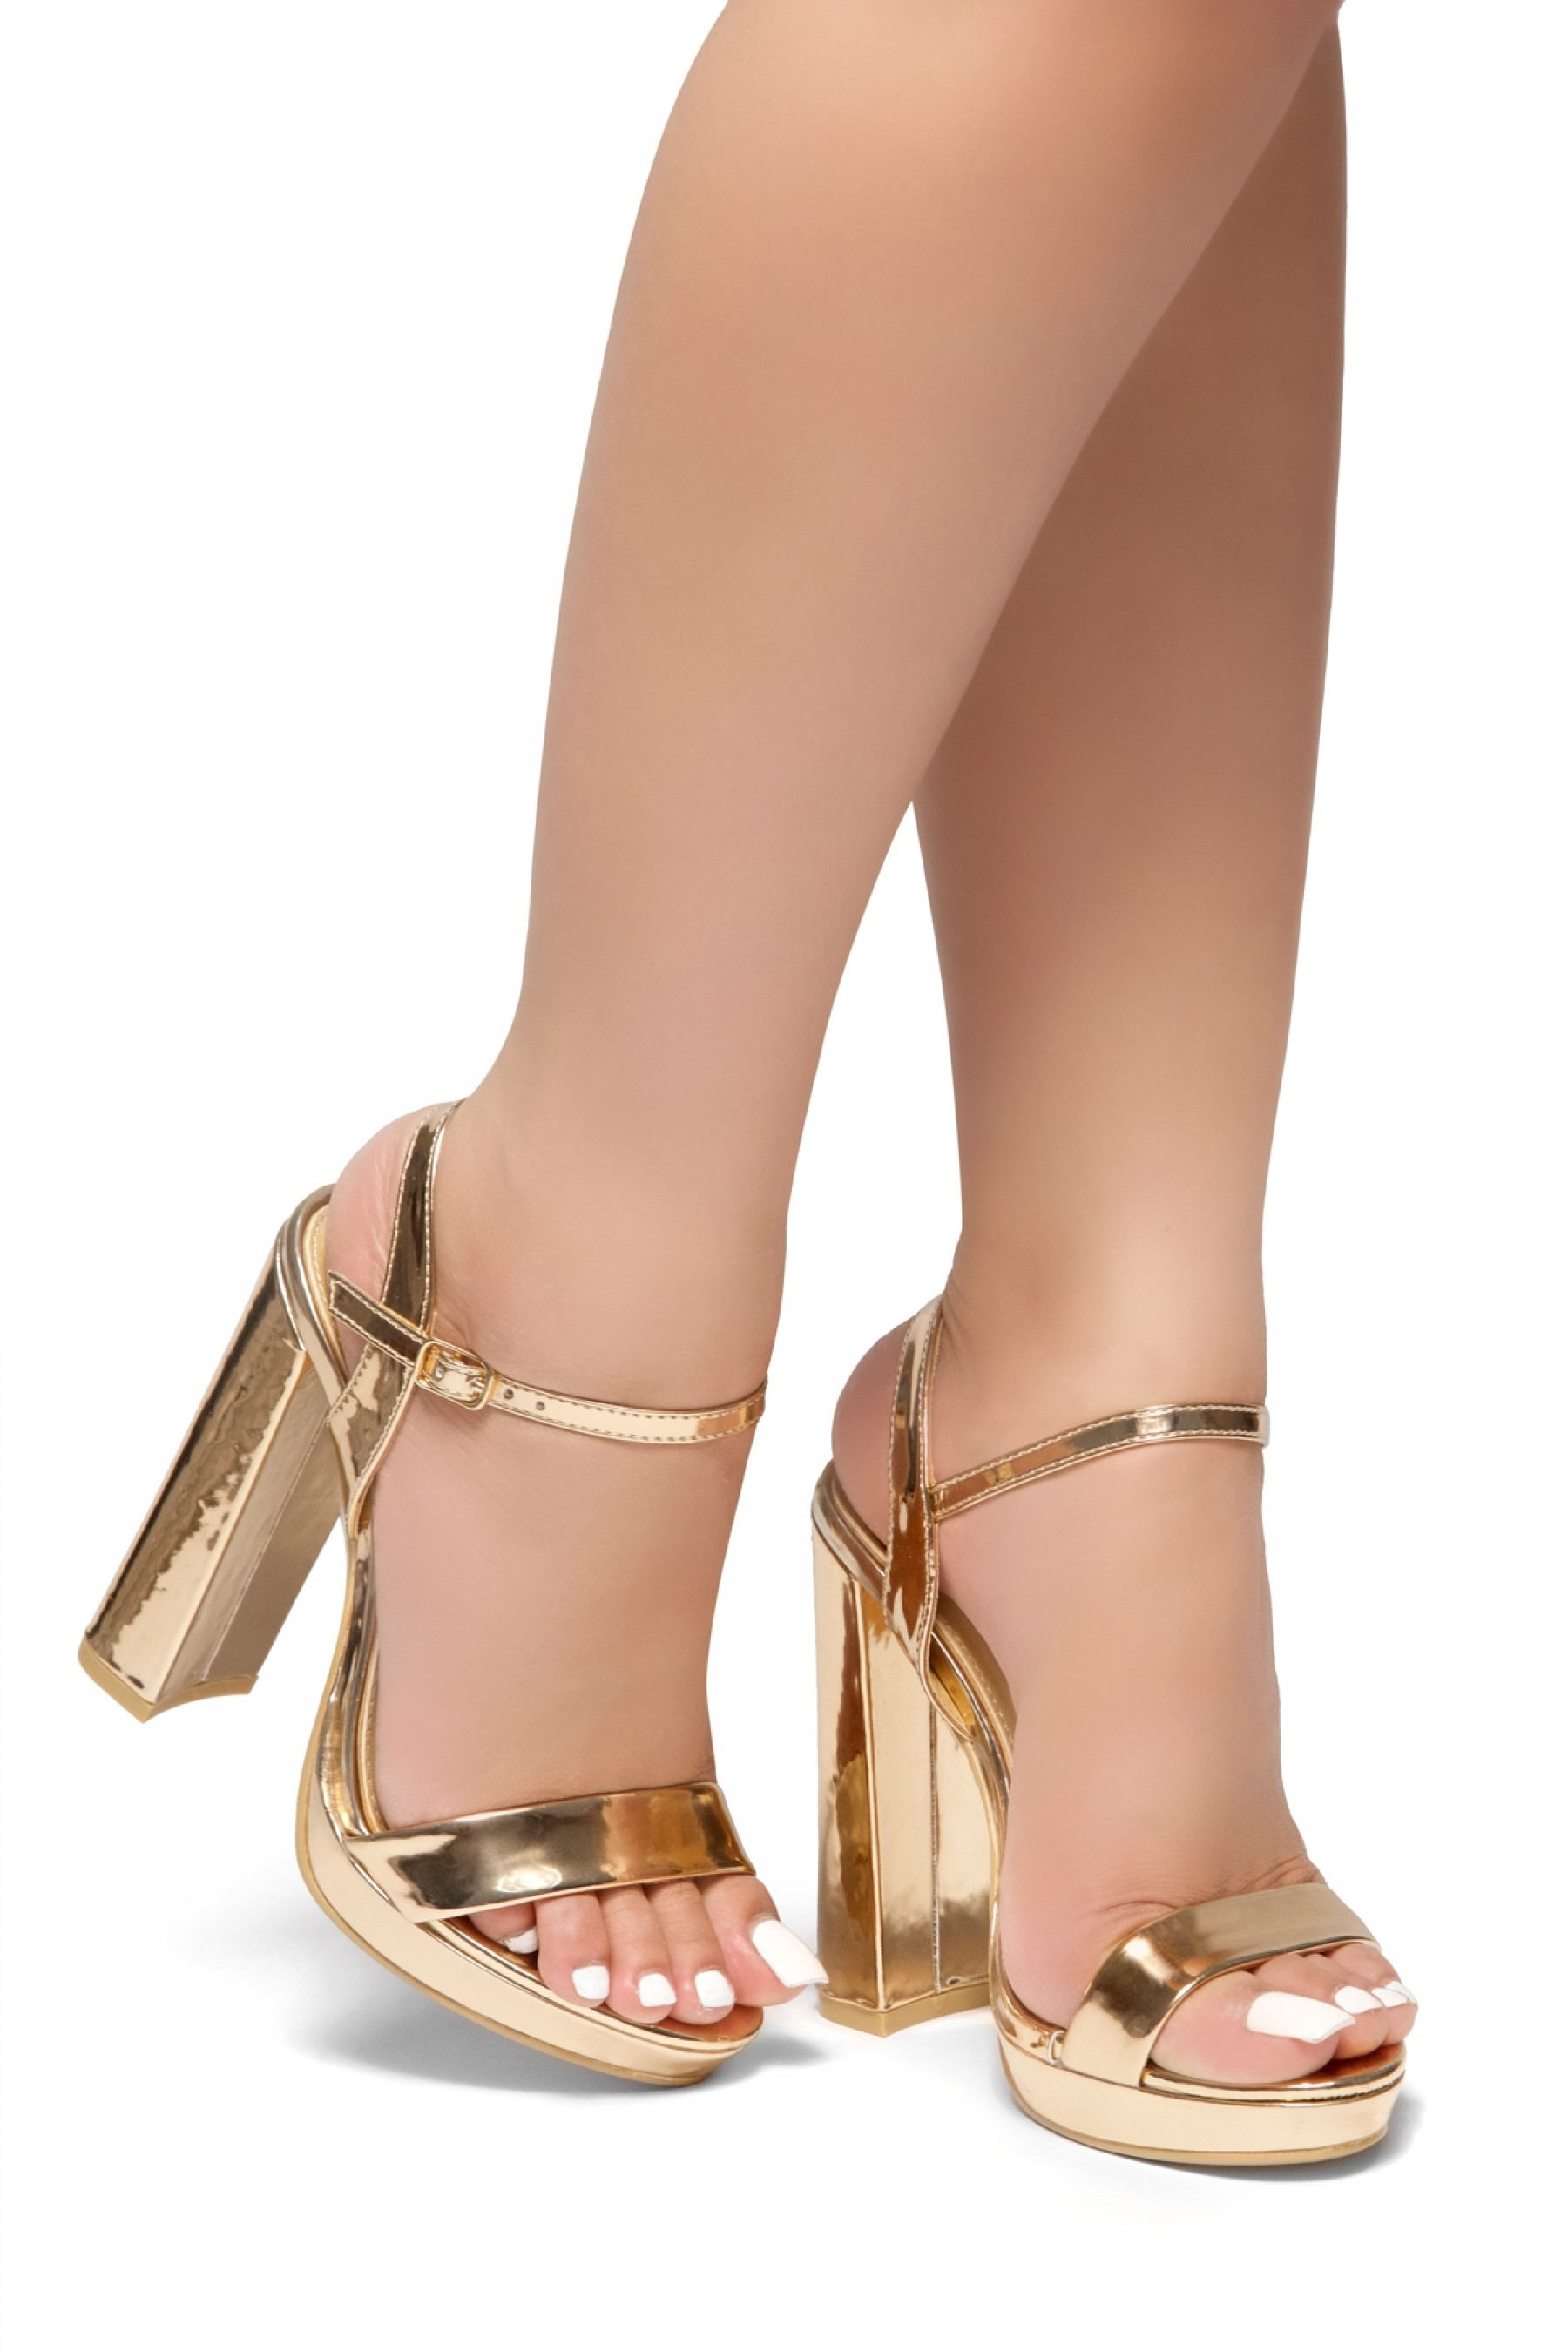 HerStyle Have it all-Open toe platform, ankle strap (RoseGold)